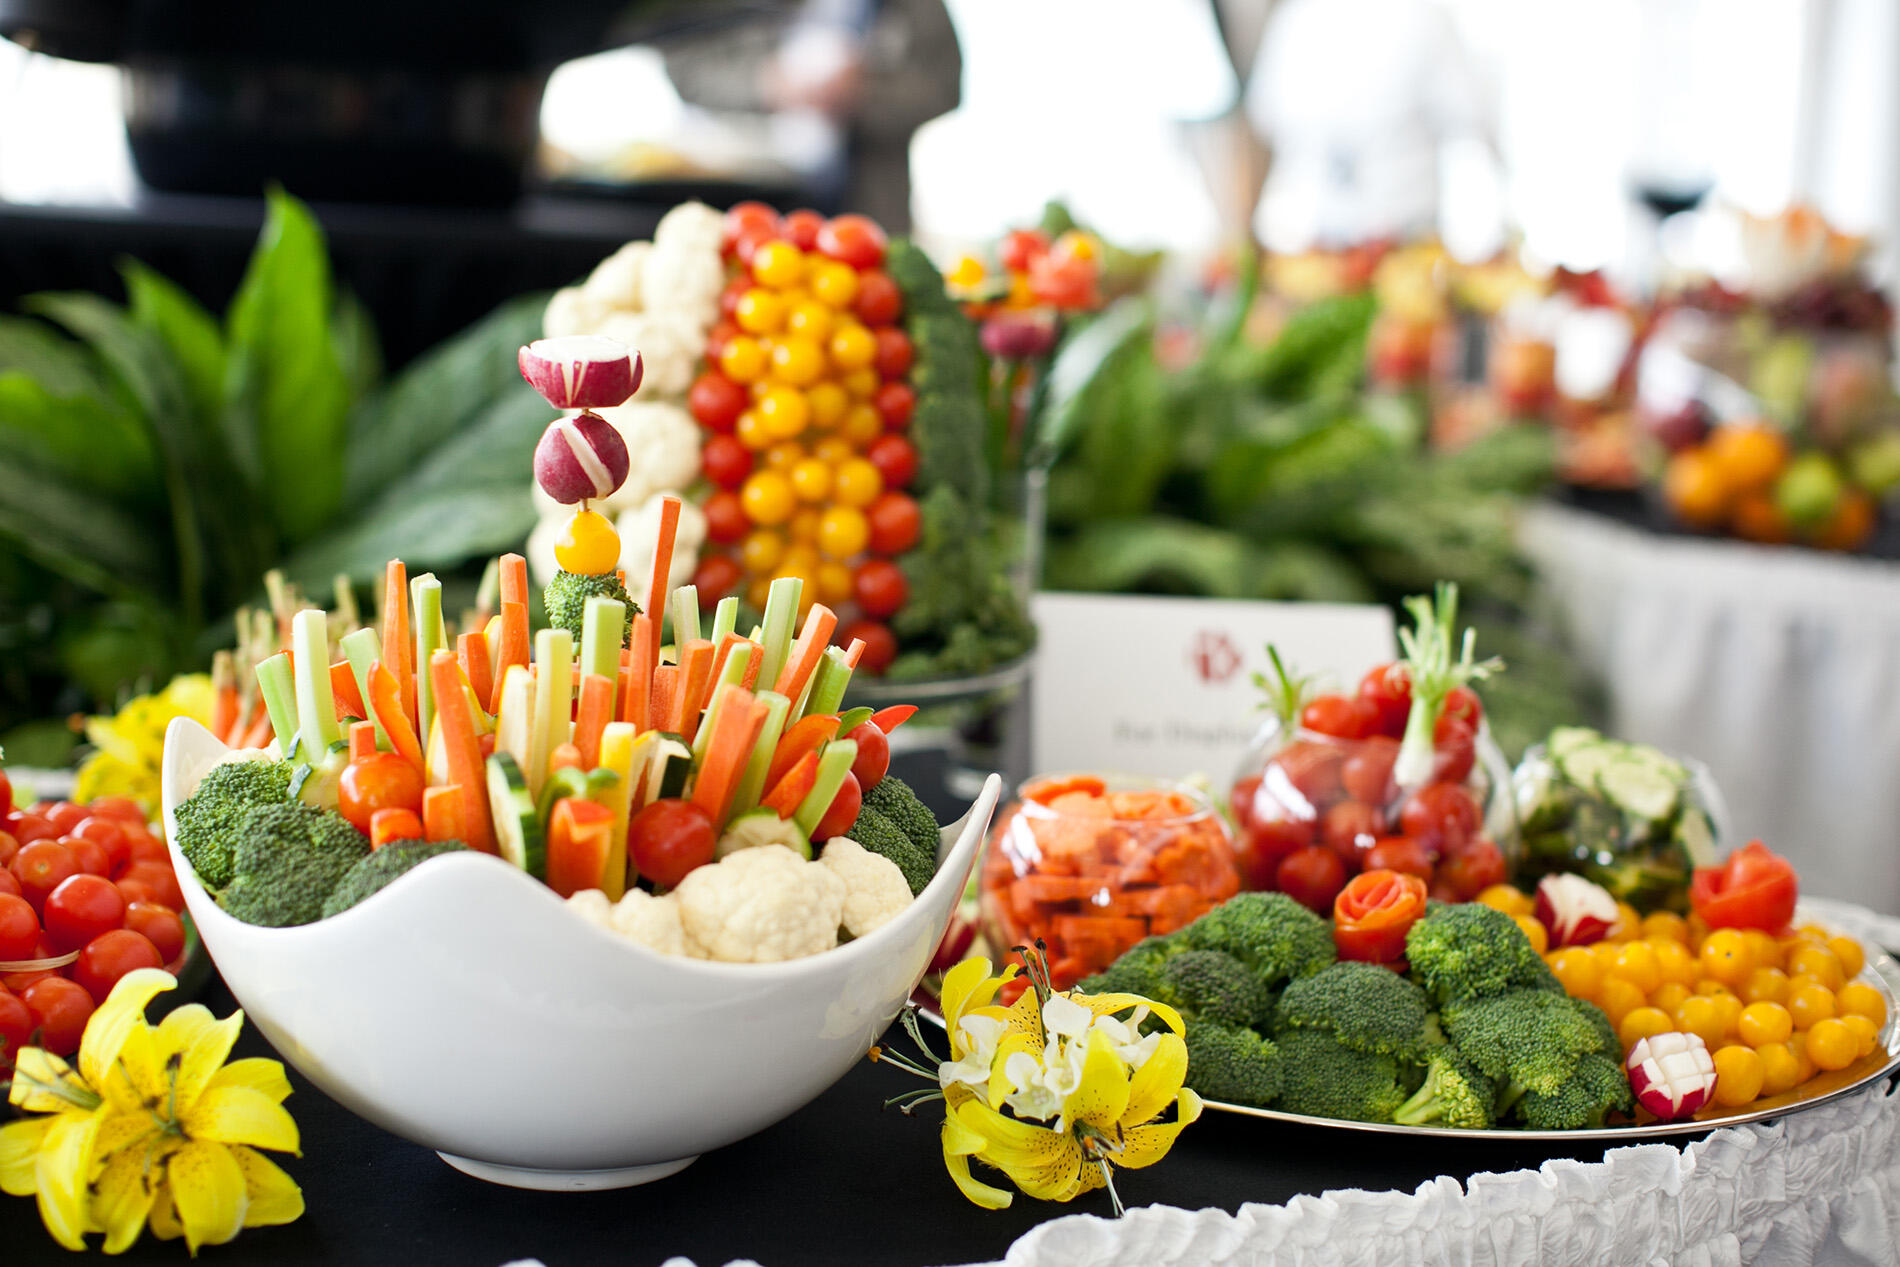 Corporate event vegetable display